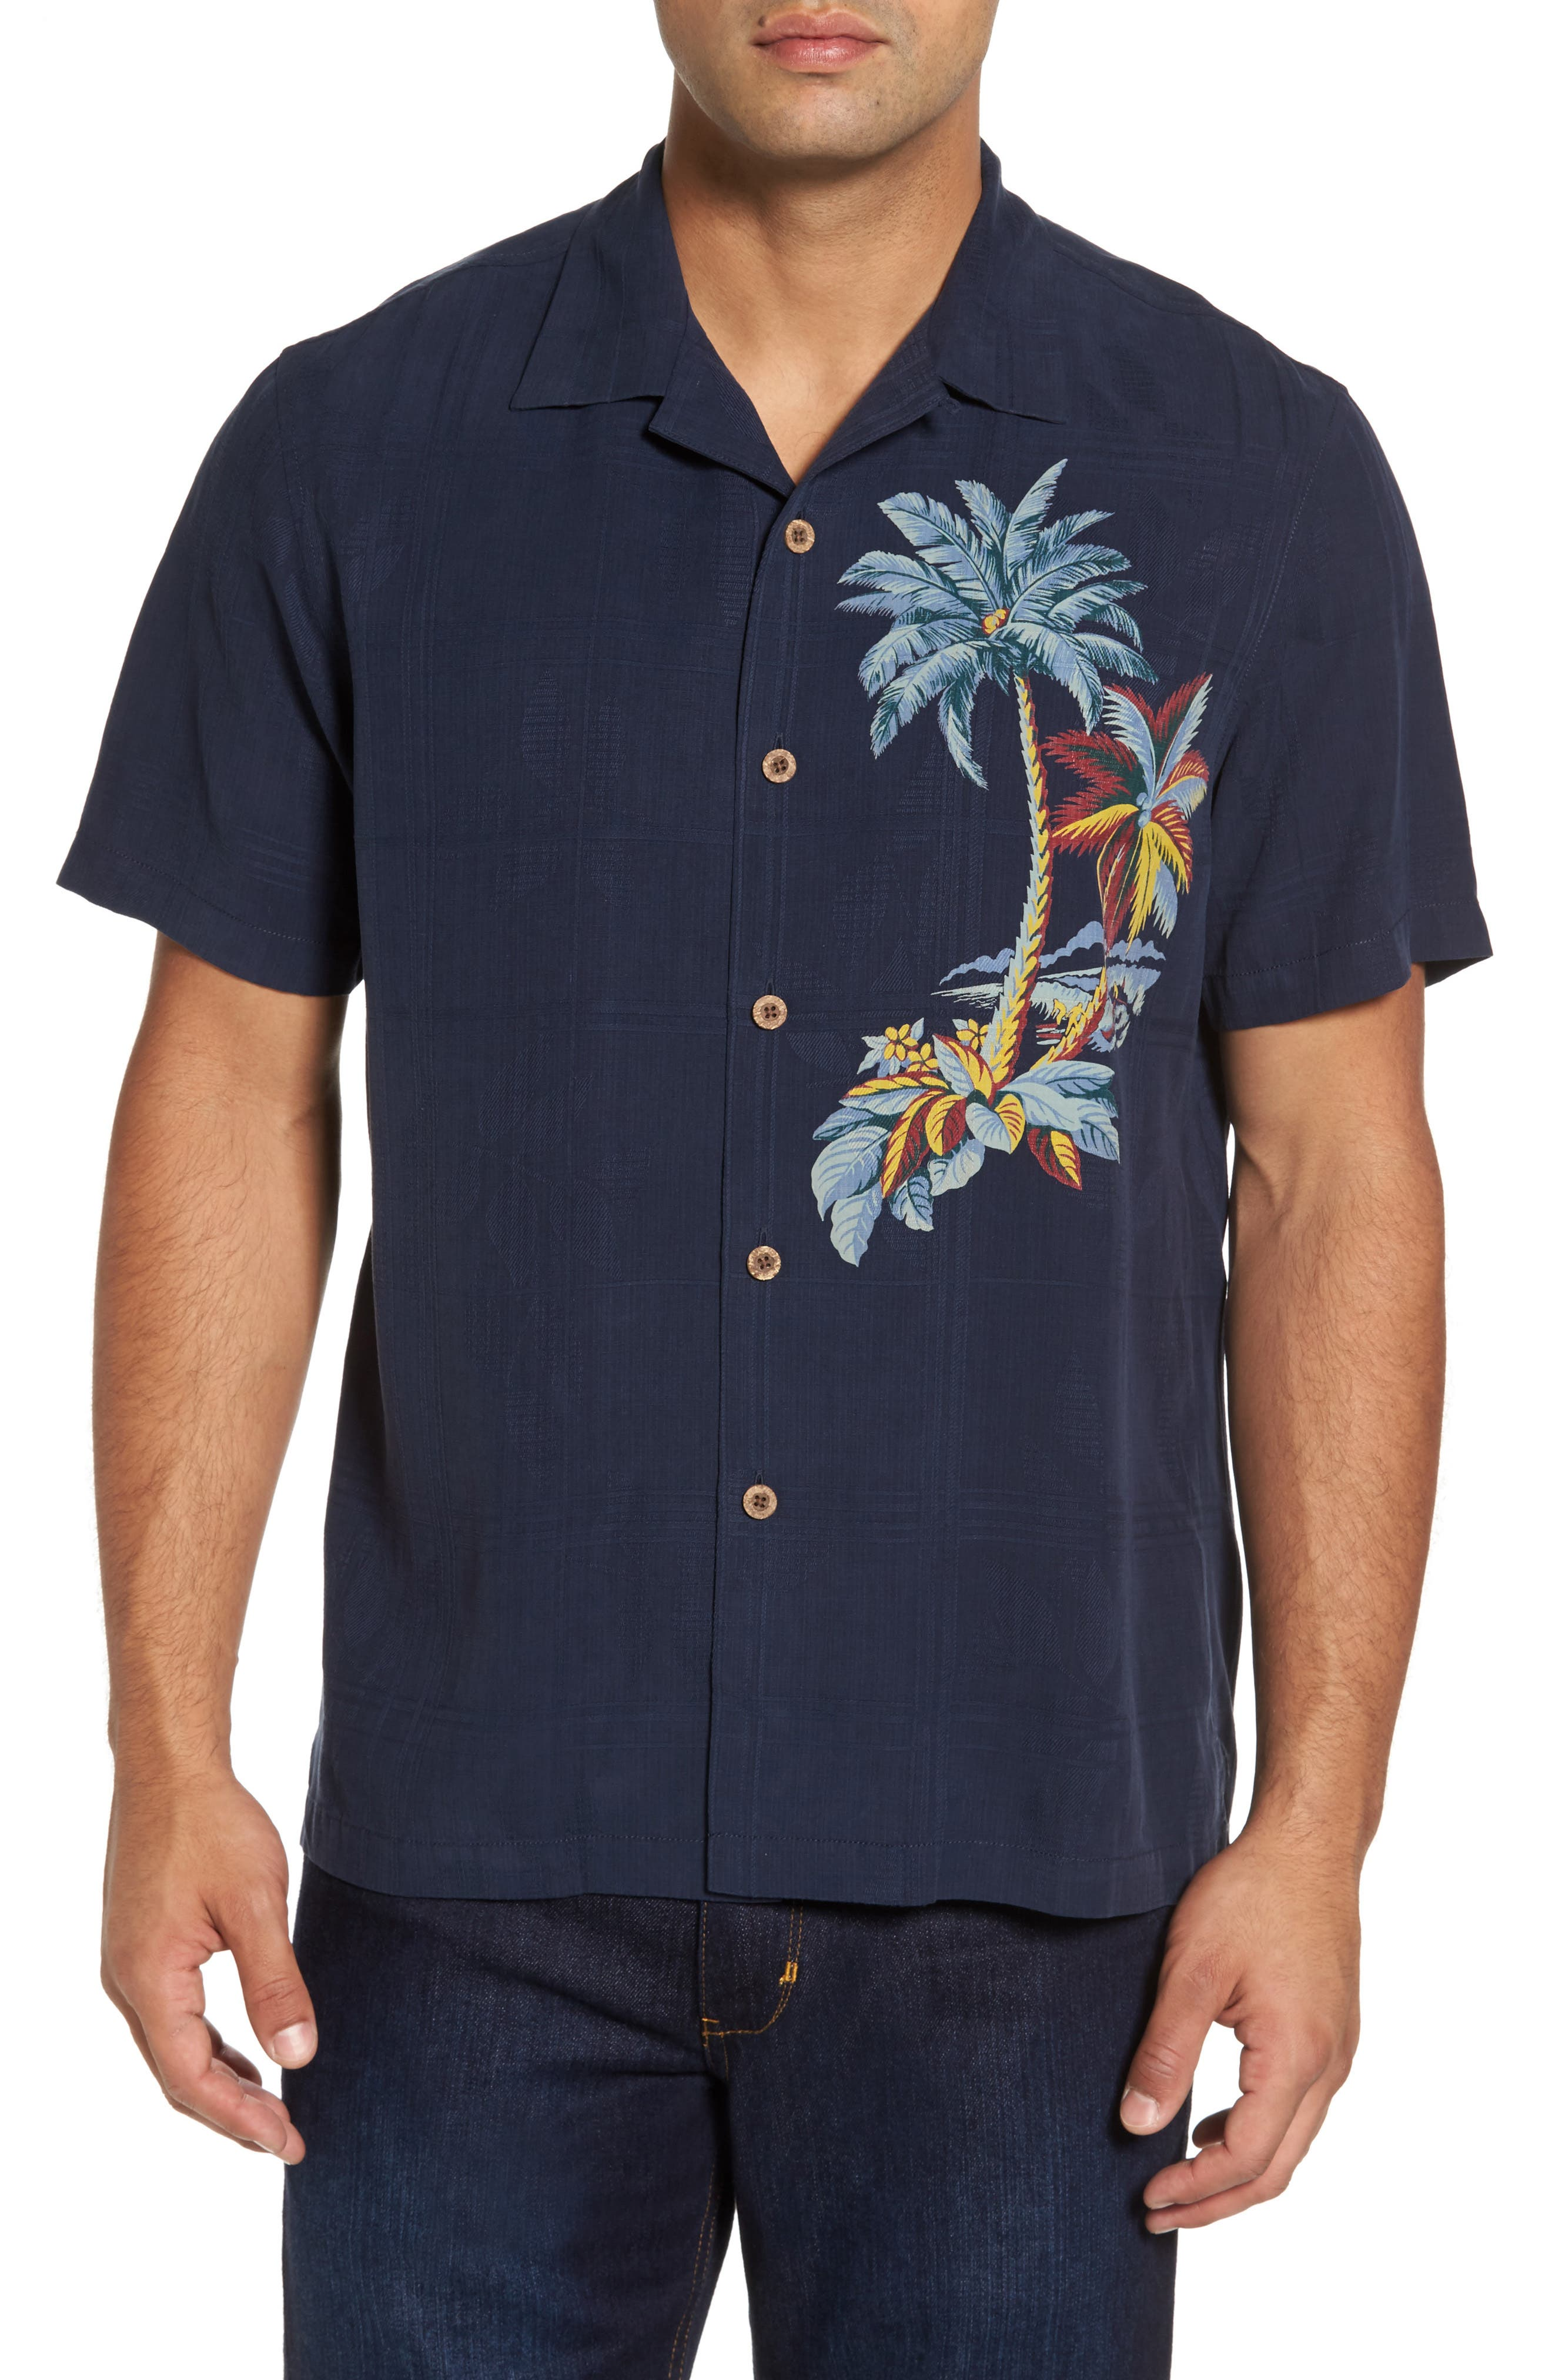 Alternate Image 1 Selected - Tommy Bahama Moonlight Palms Silk Camp Shirt